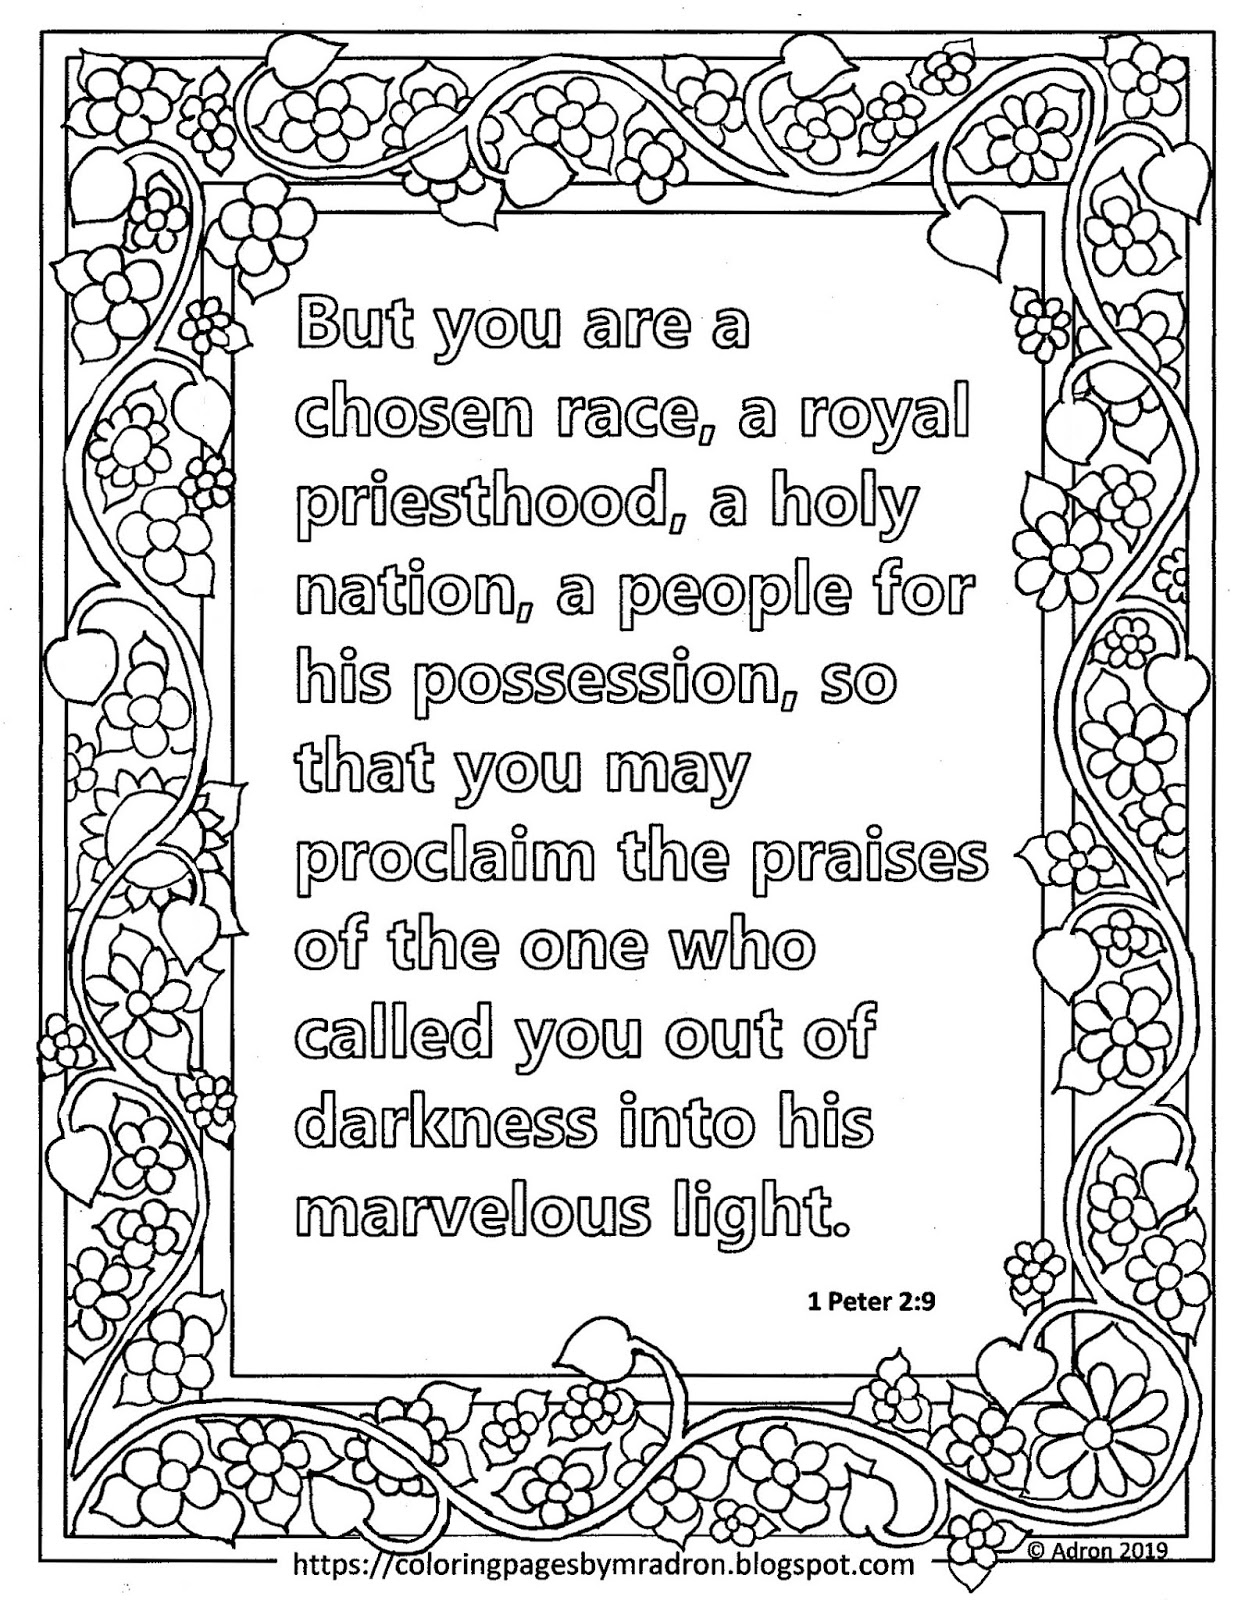 1 peter 5 7 coloring page coloring pages for kids by mr adron free print and color peter 1 7 coloring page 5